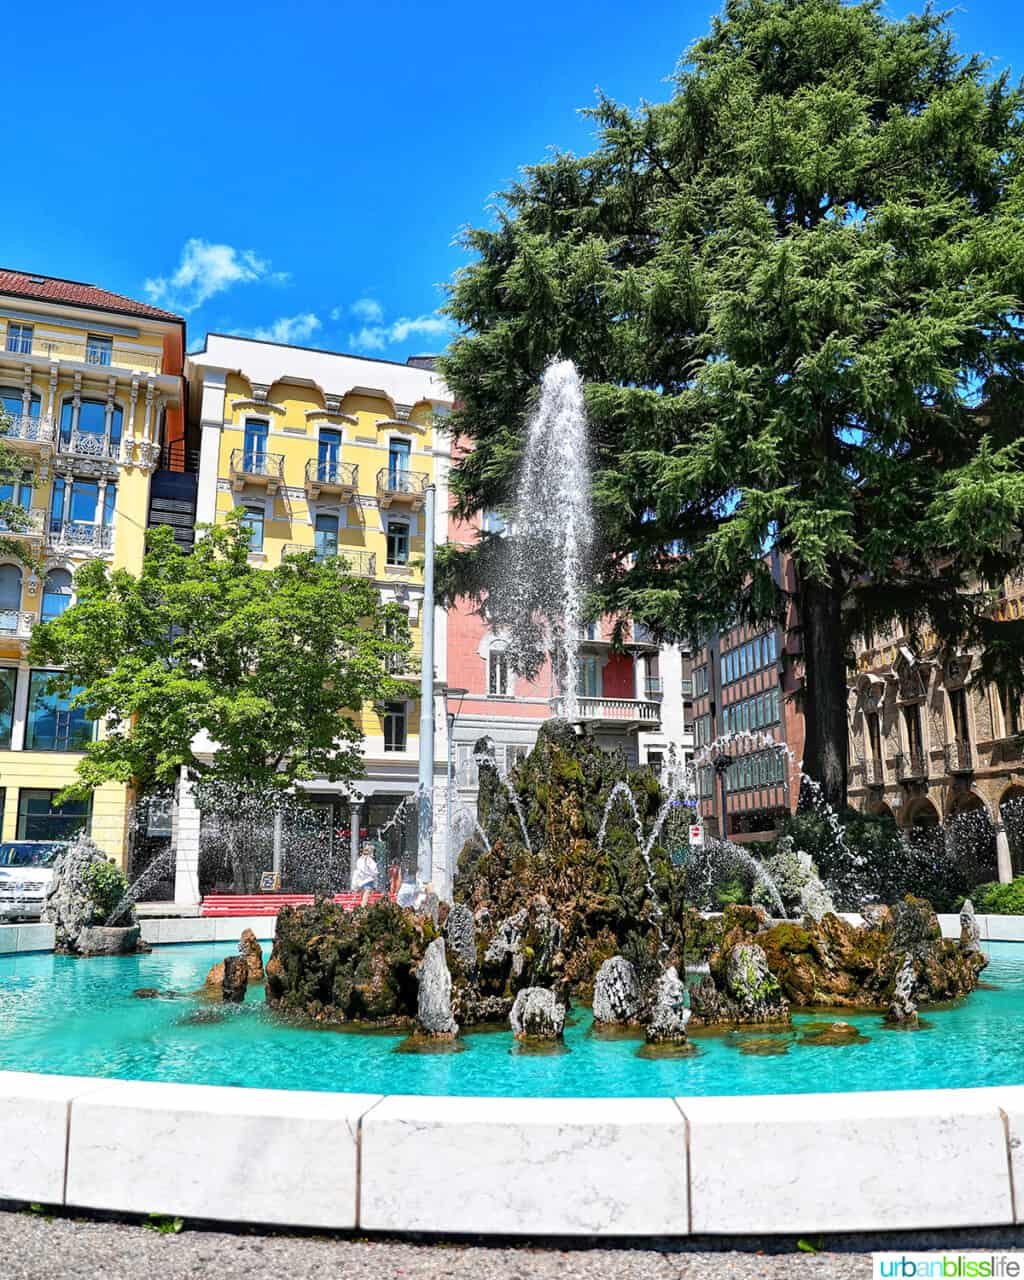 fountain against colorful buildings in Lugano, Switzerland